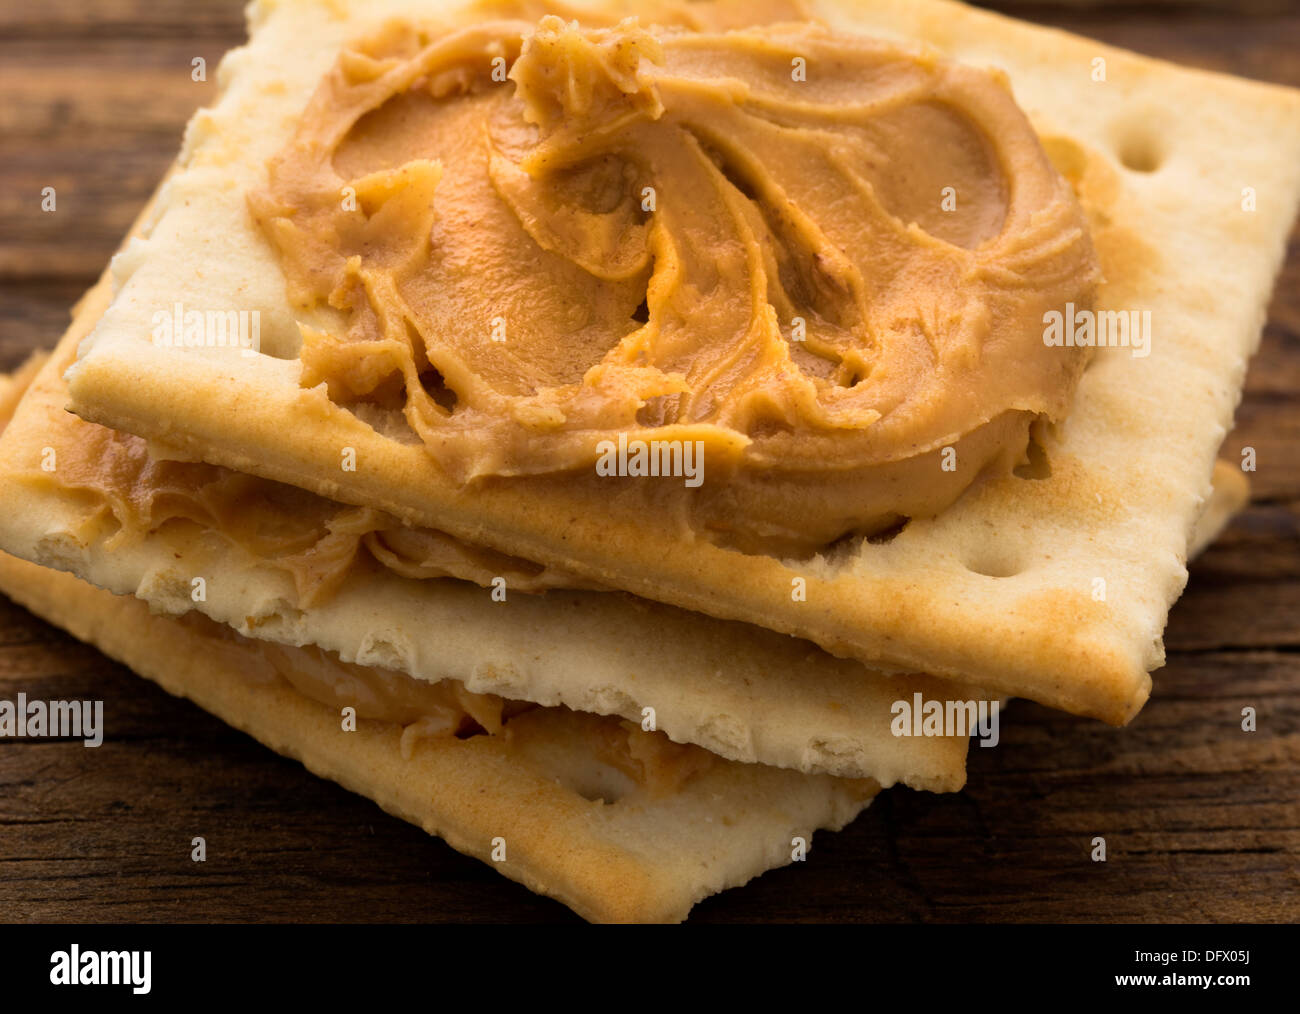 Peanut butter on crackers on weathered plank - Stock Image